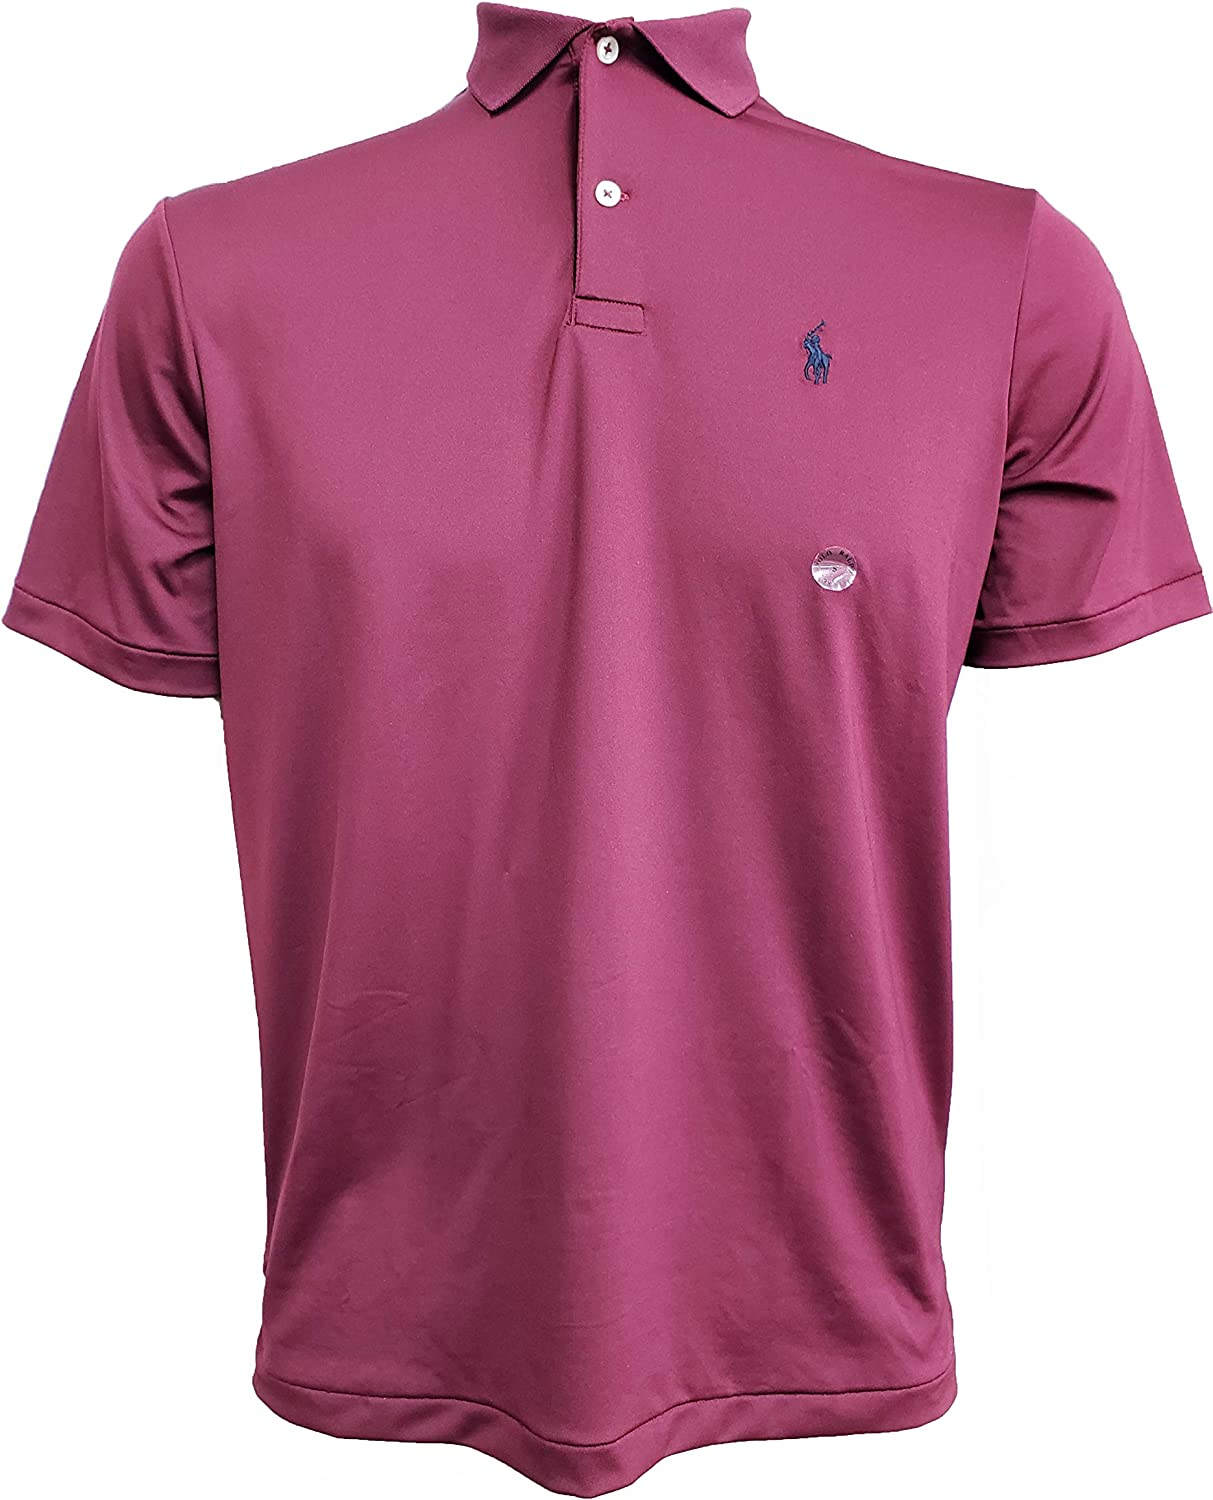 Max 66% OFF Polo Ralph Lauren NEW before selling ☆ Mens Performance Sm Interlock Red Shirt